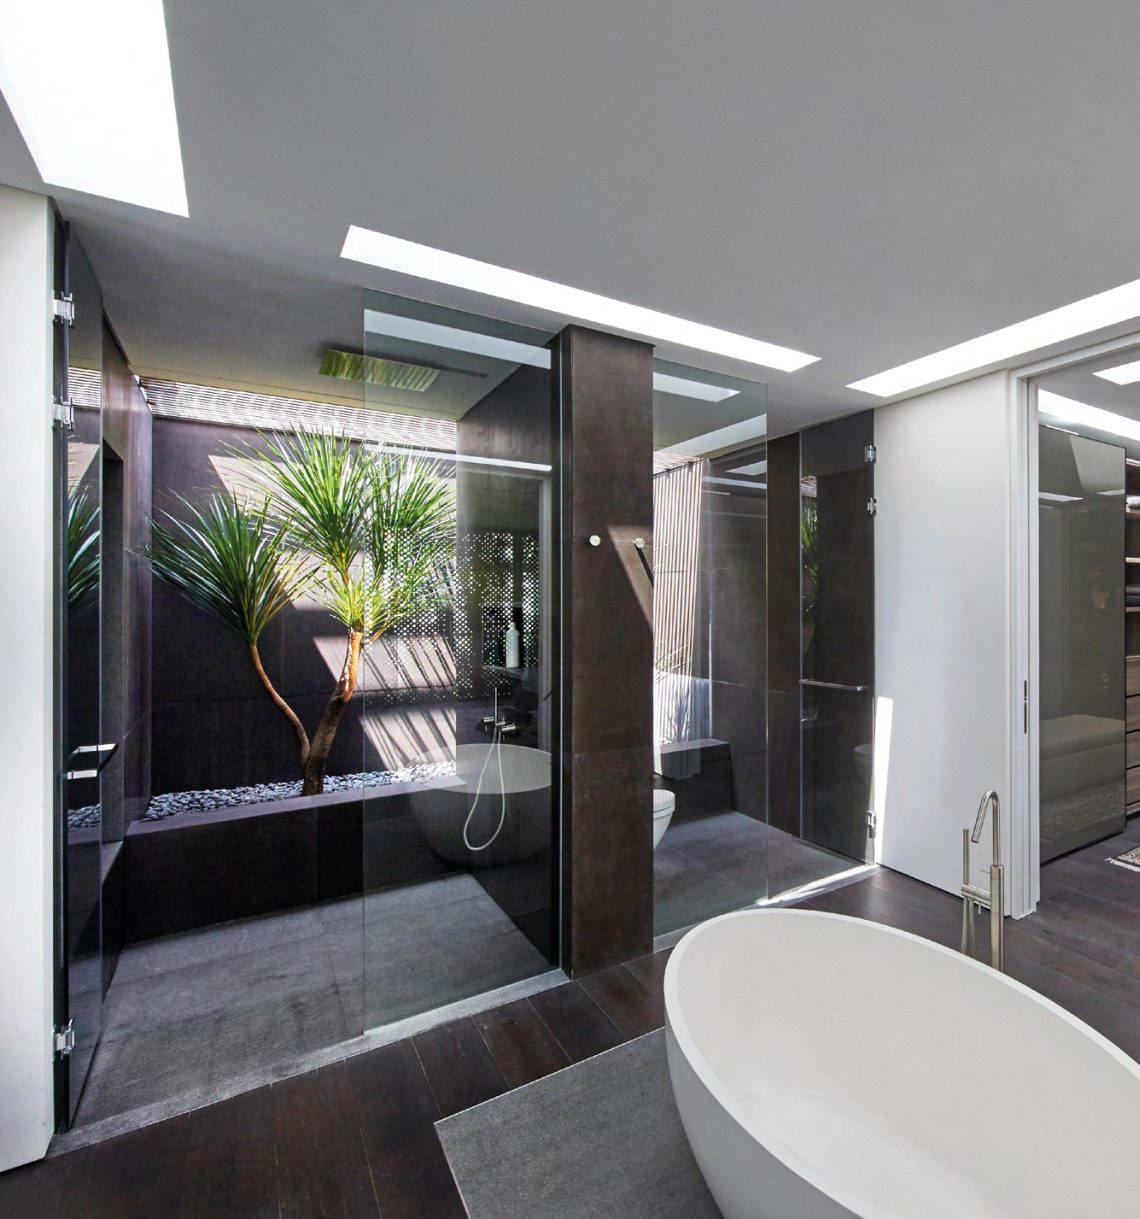 Carefully placed skylights in the master bathroom and walk-in wardrobe give the spaces a bright and airy feel.